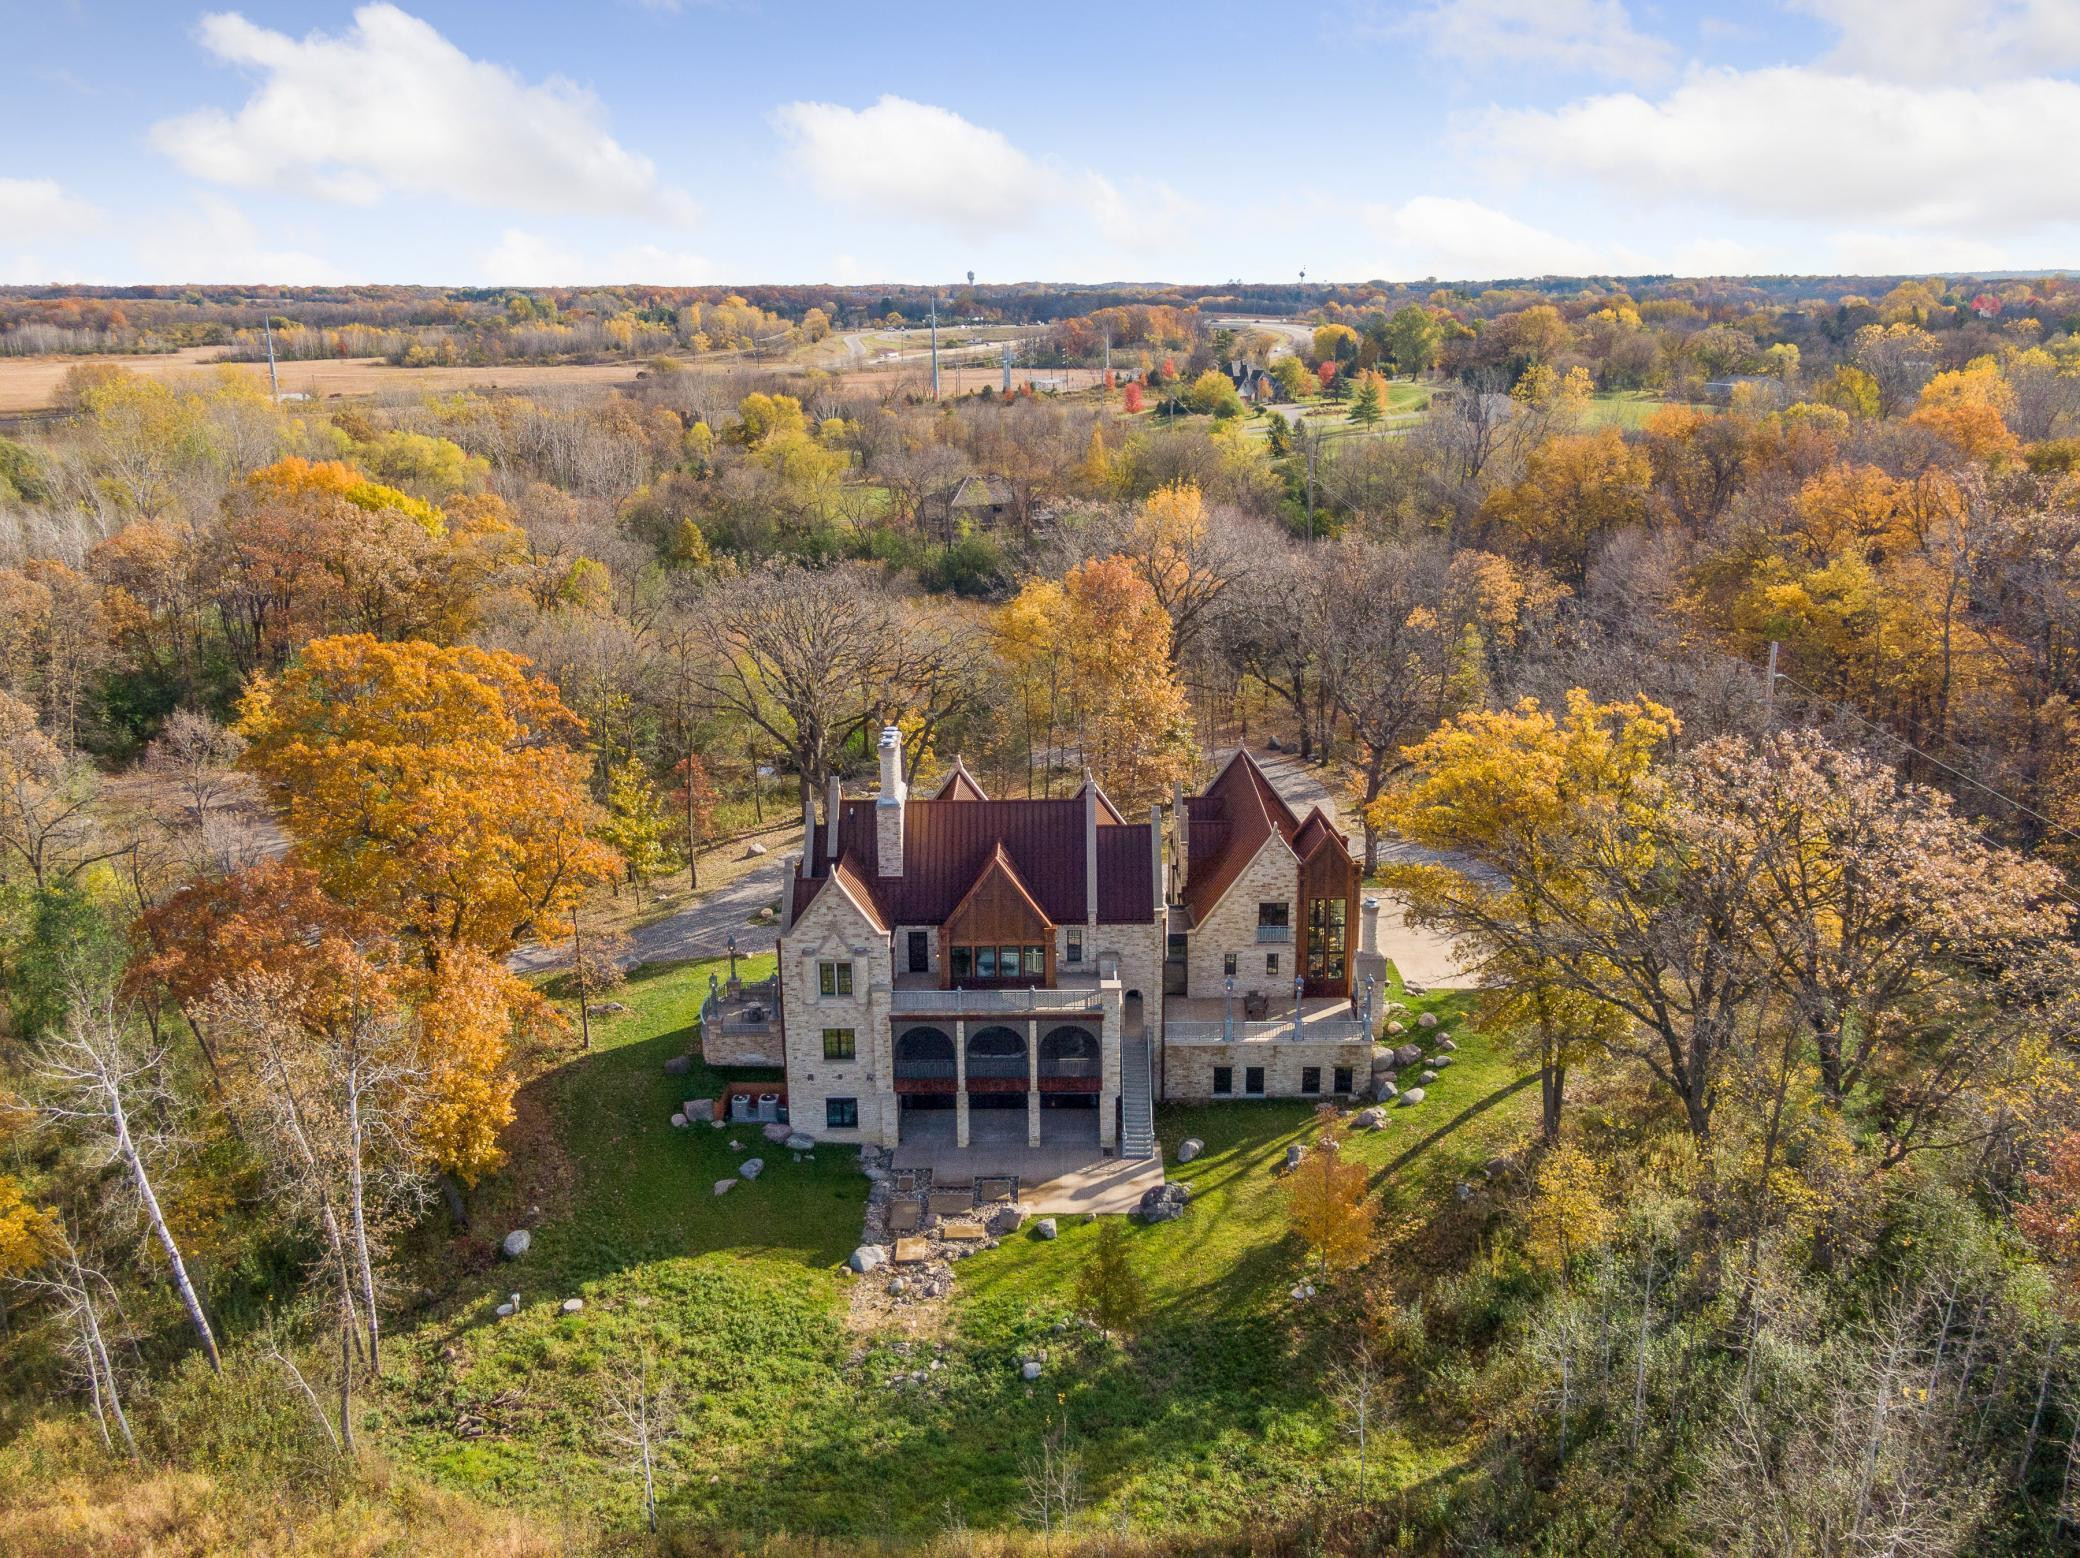 One-of-a-kind estate, this impressive castle sits within an enchanted forest. Opportunity to add detached garage, pool and custom entrance gate.